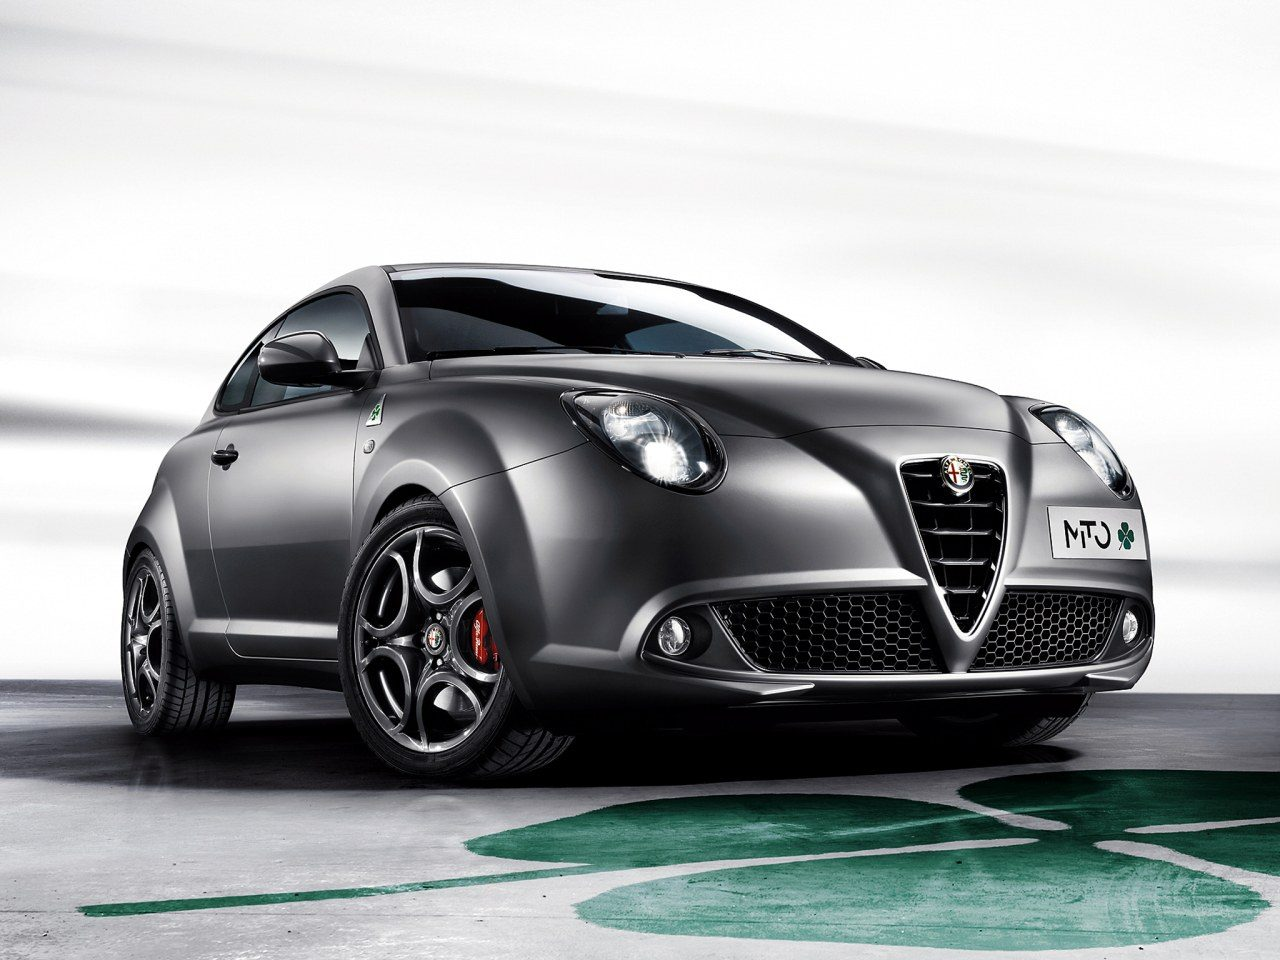 foto alfa romeo mito qv 2014 alfa romeo mito qv 2014 02. Black Bedroom Furniture Sets. Home Design Ideas